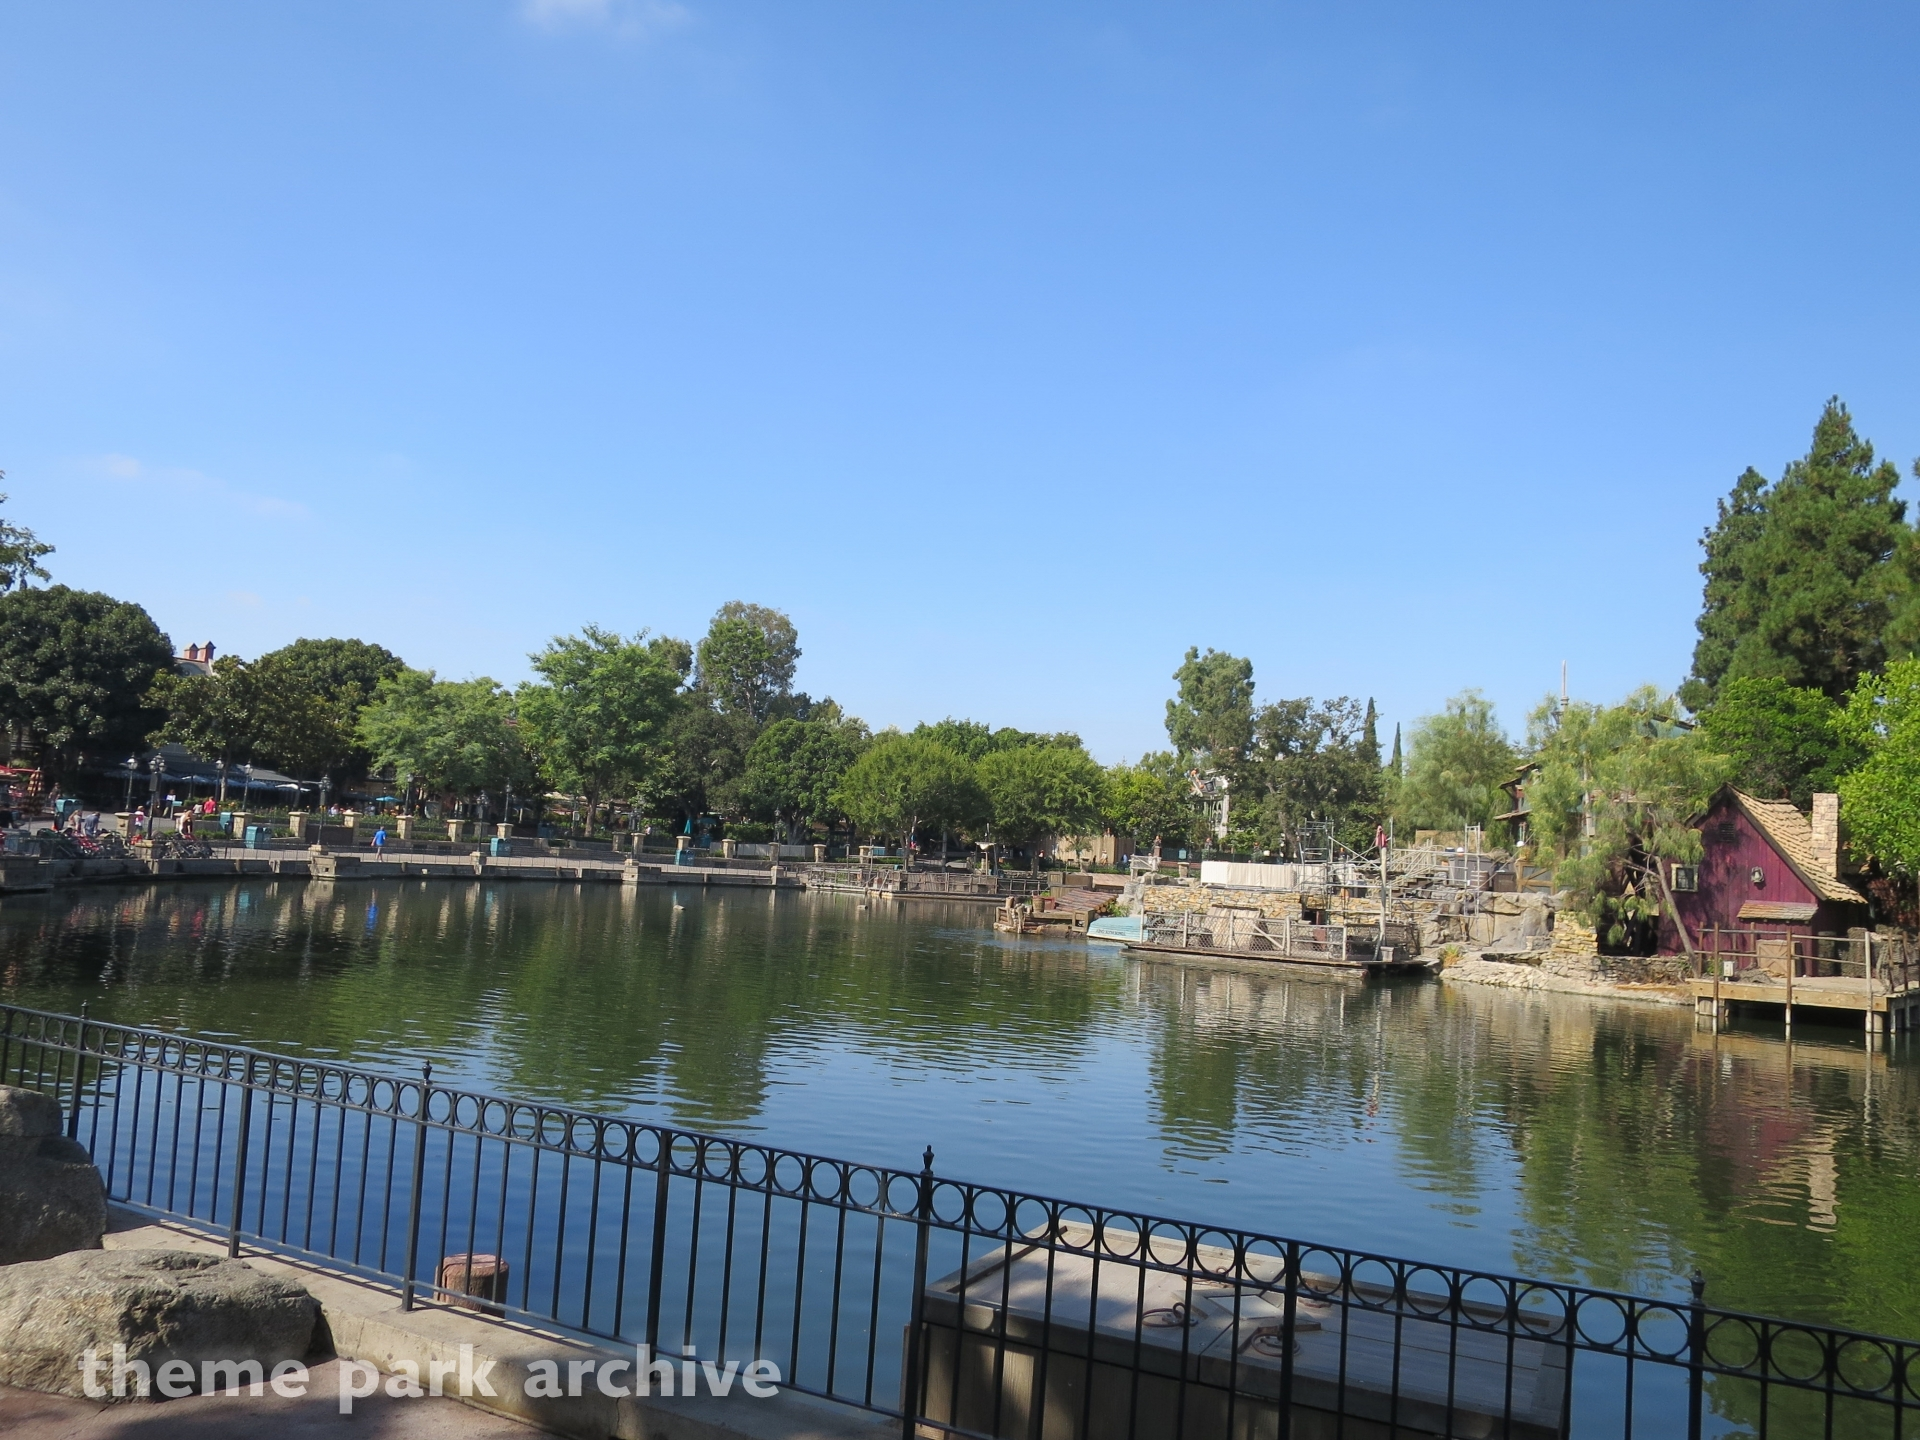 Pirate's Lair on Tom Sawyer Island at Disneyland